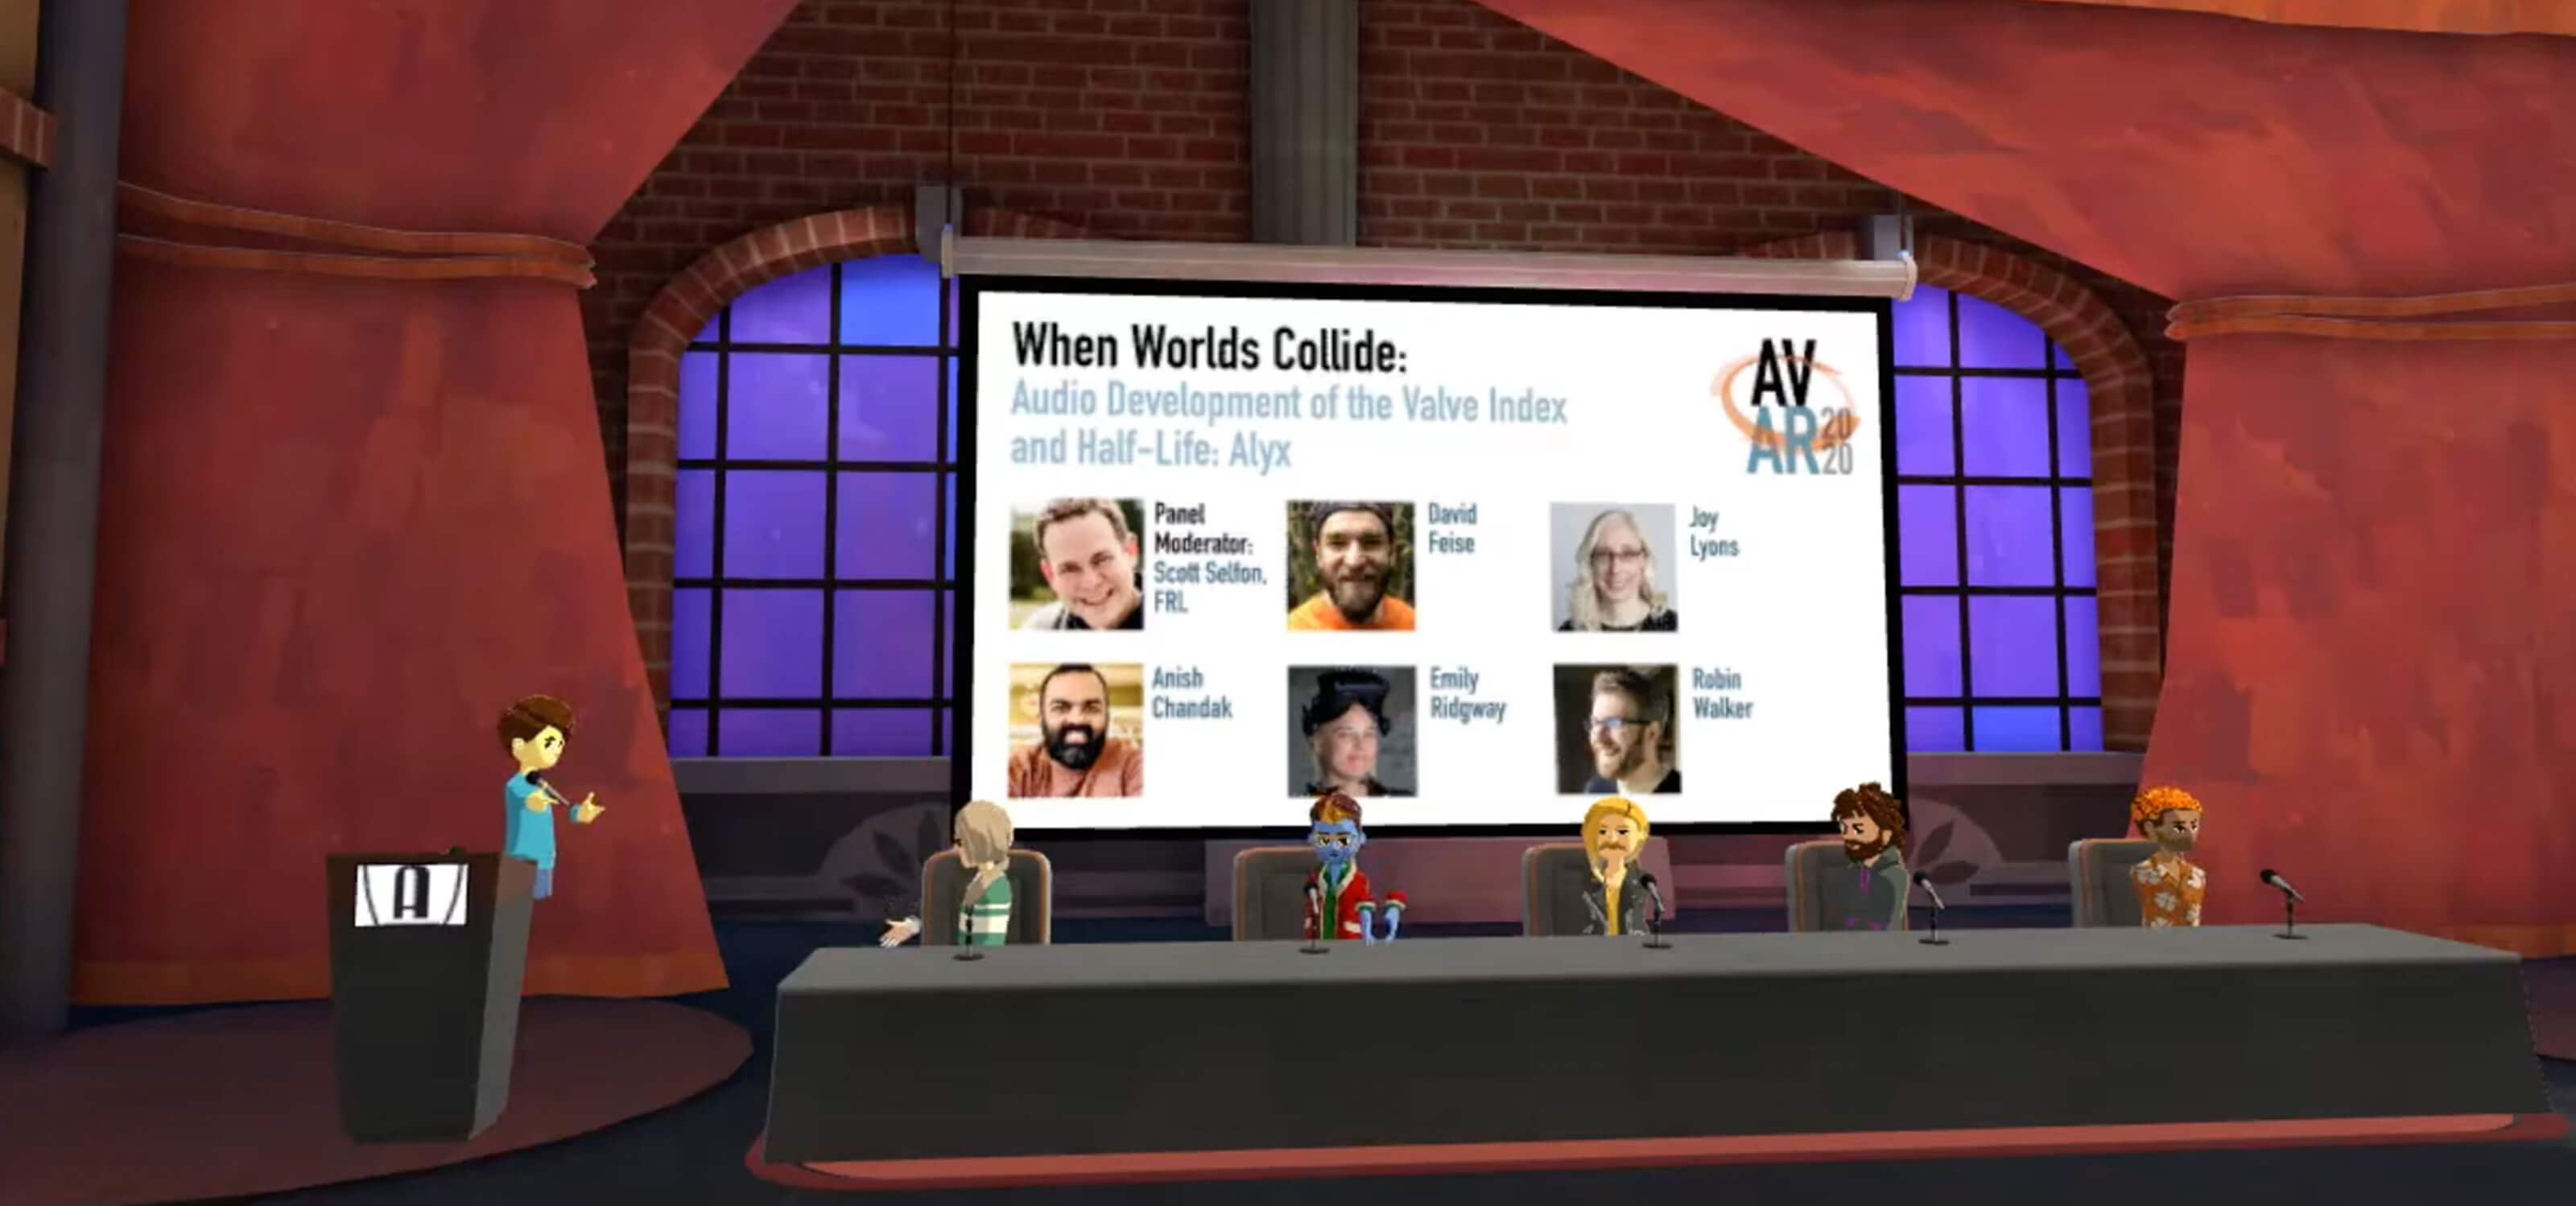 VR avatars of Valve audio designers sit for a panel discussion in a virtual conference room.